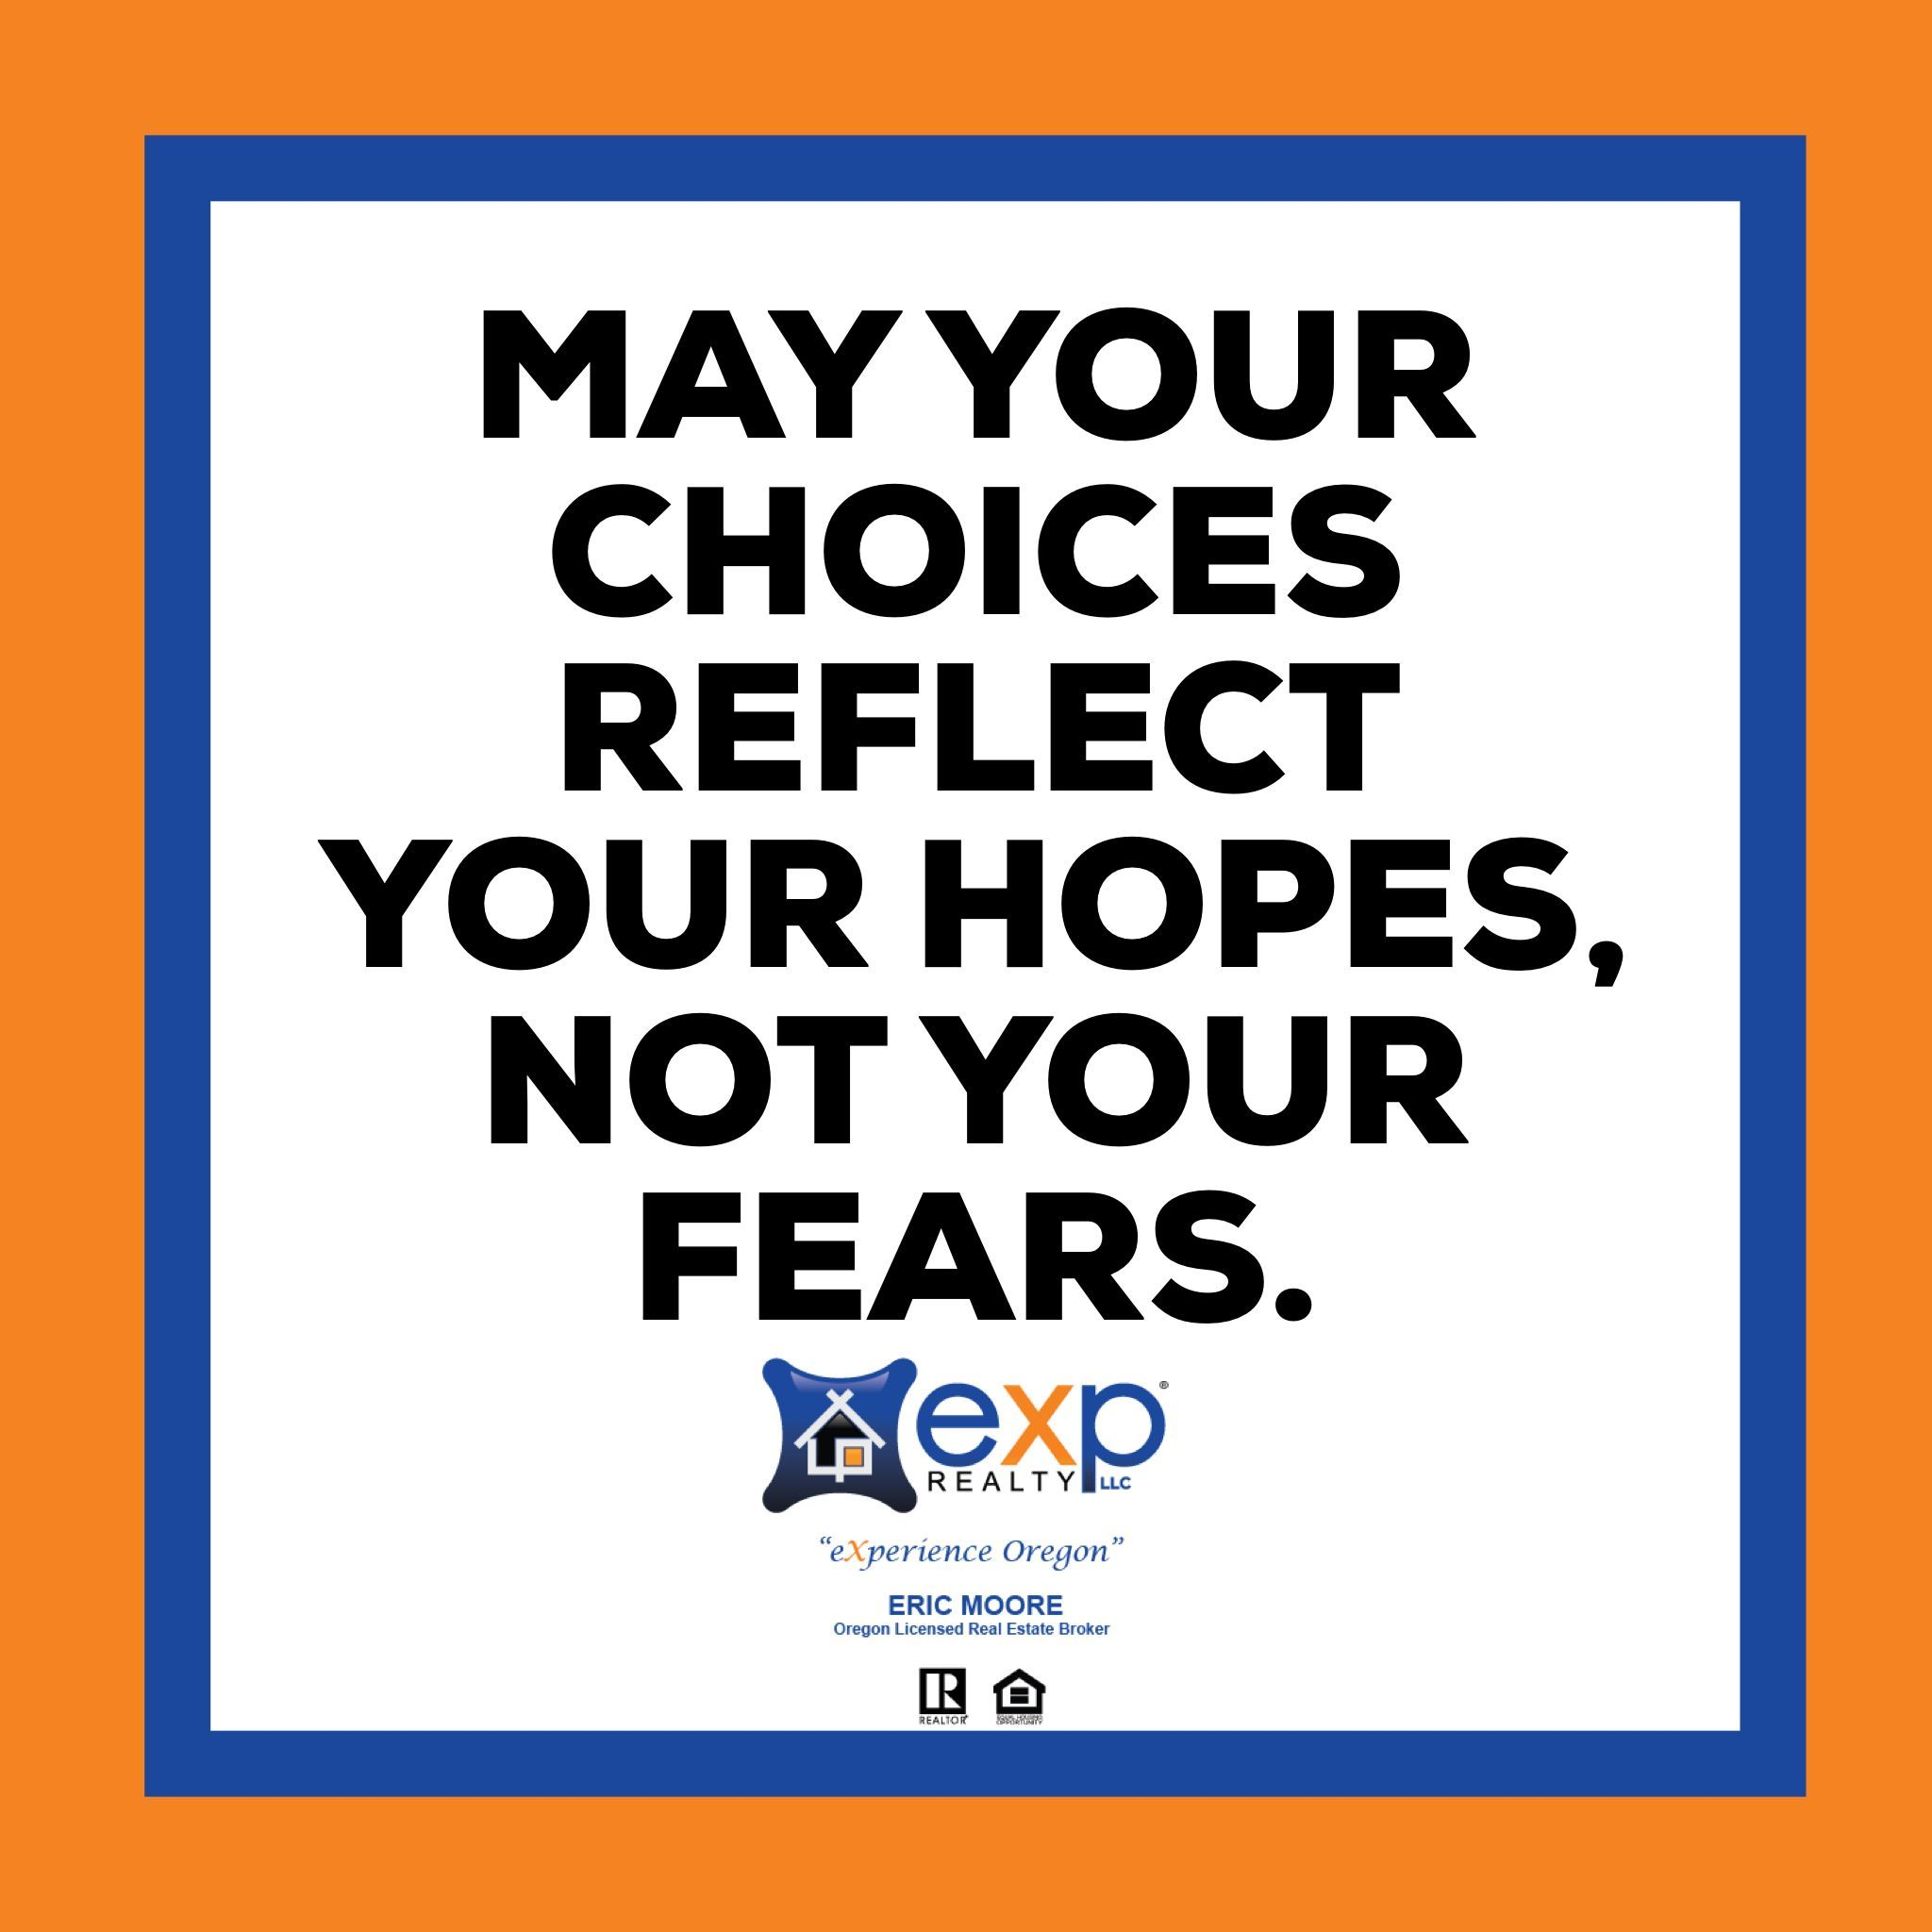 Let Your Choices Reflect Your Hopes Dreams And Goals Not Your Fears Wednesdaywisdom Exporegon Real Estate Marketing Real Estate Companies Reflection